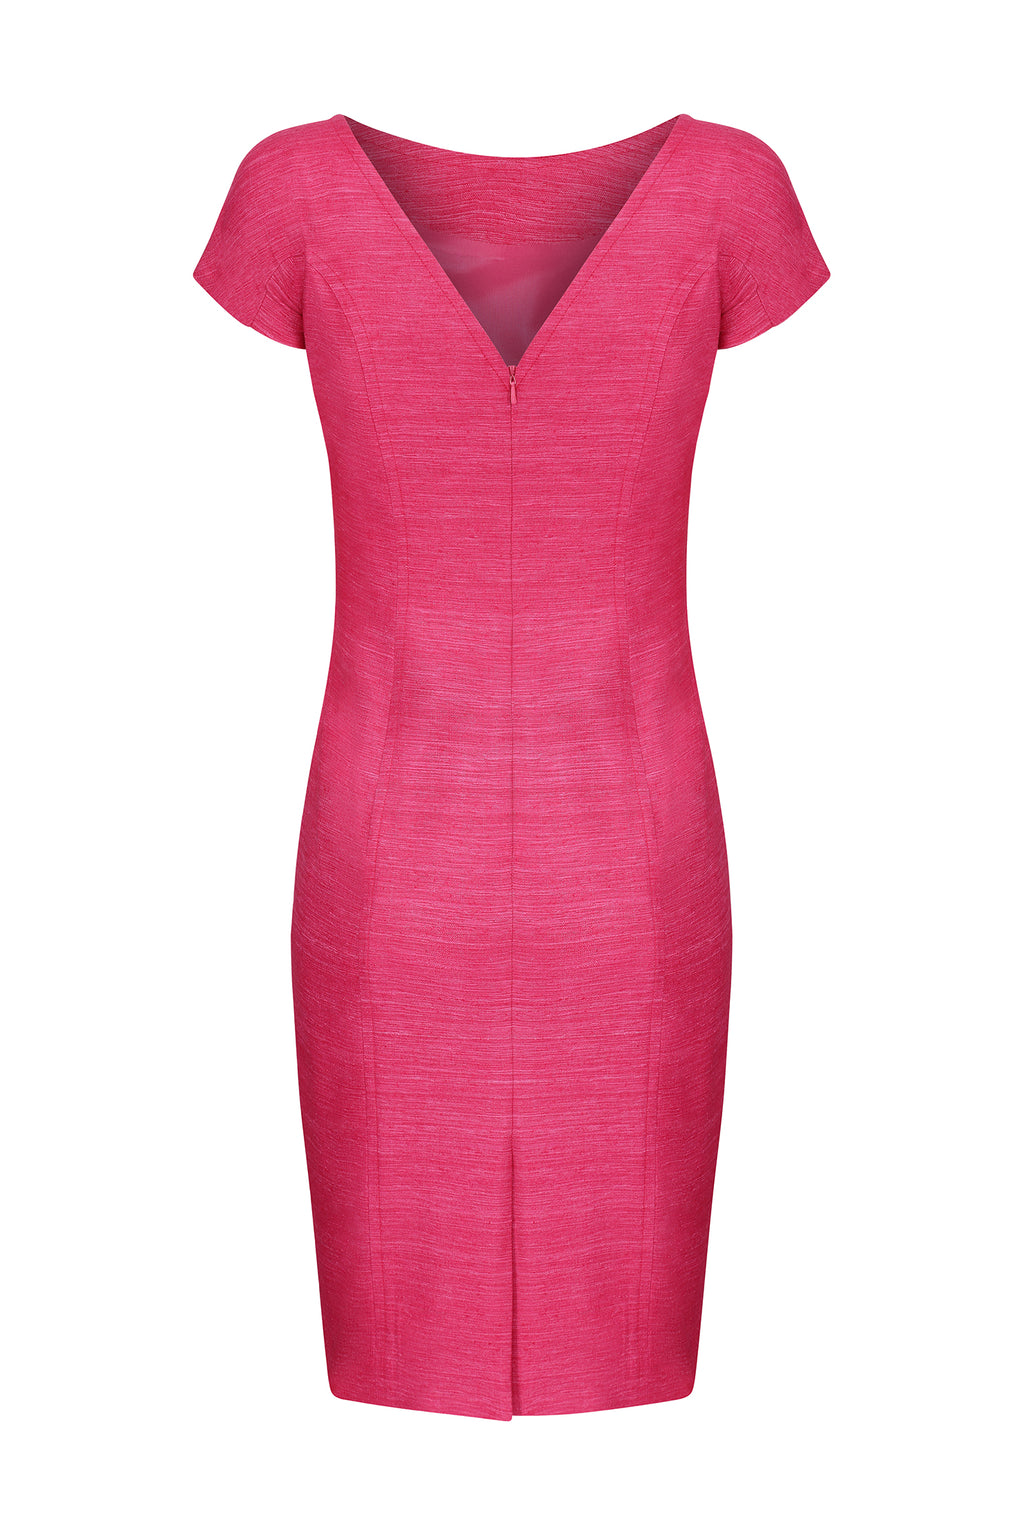 Plain silk shift dress with cap sleeves in fuchsia - Jess